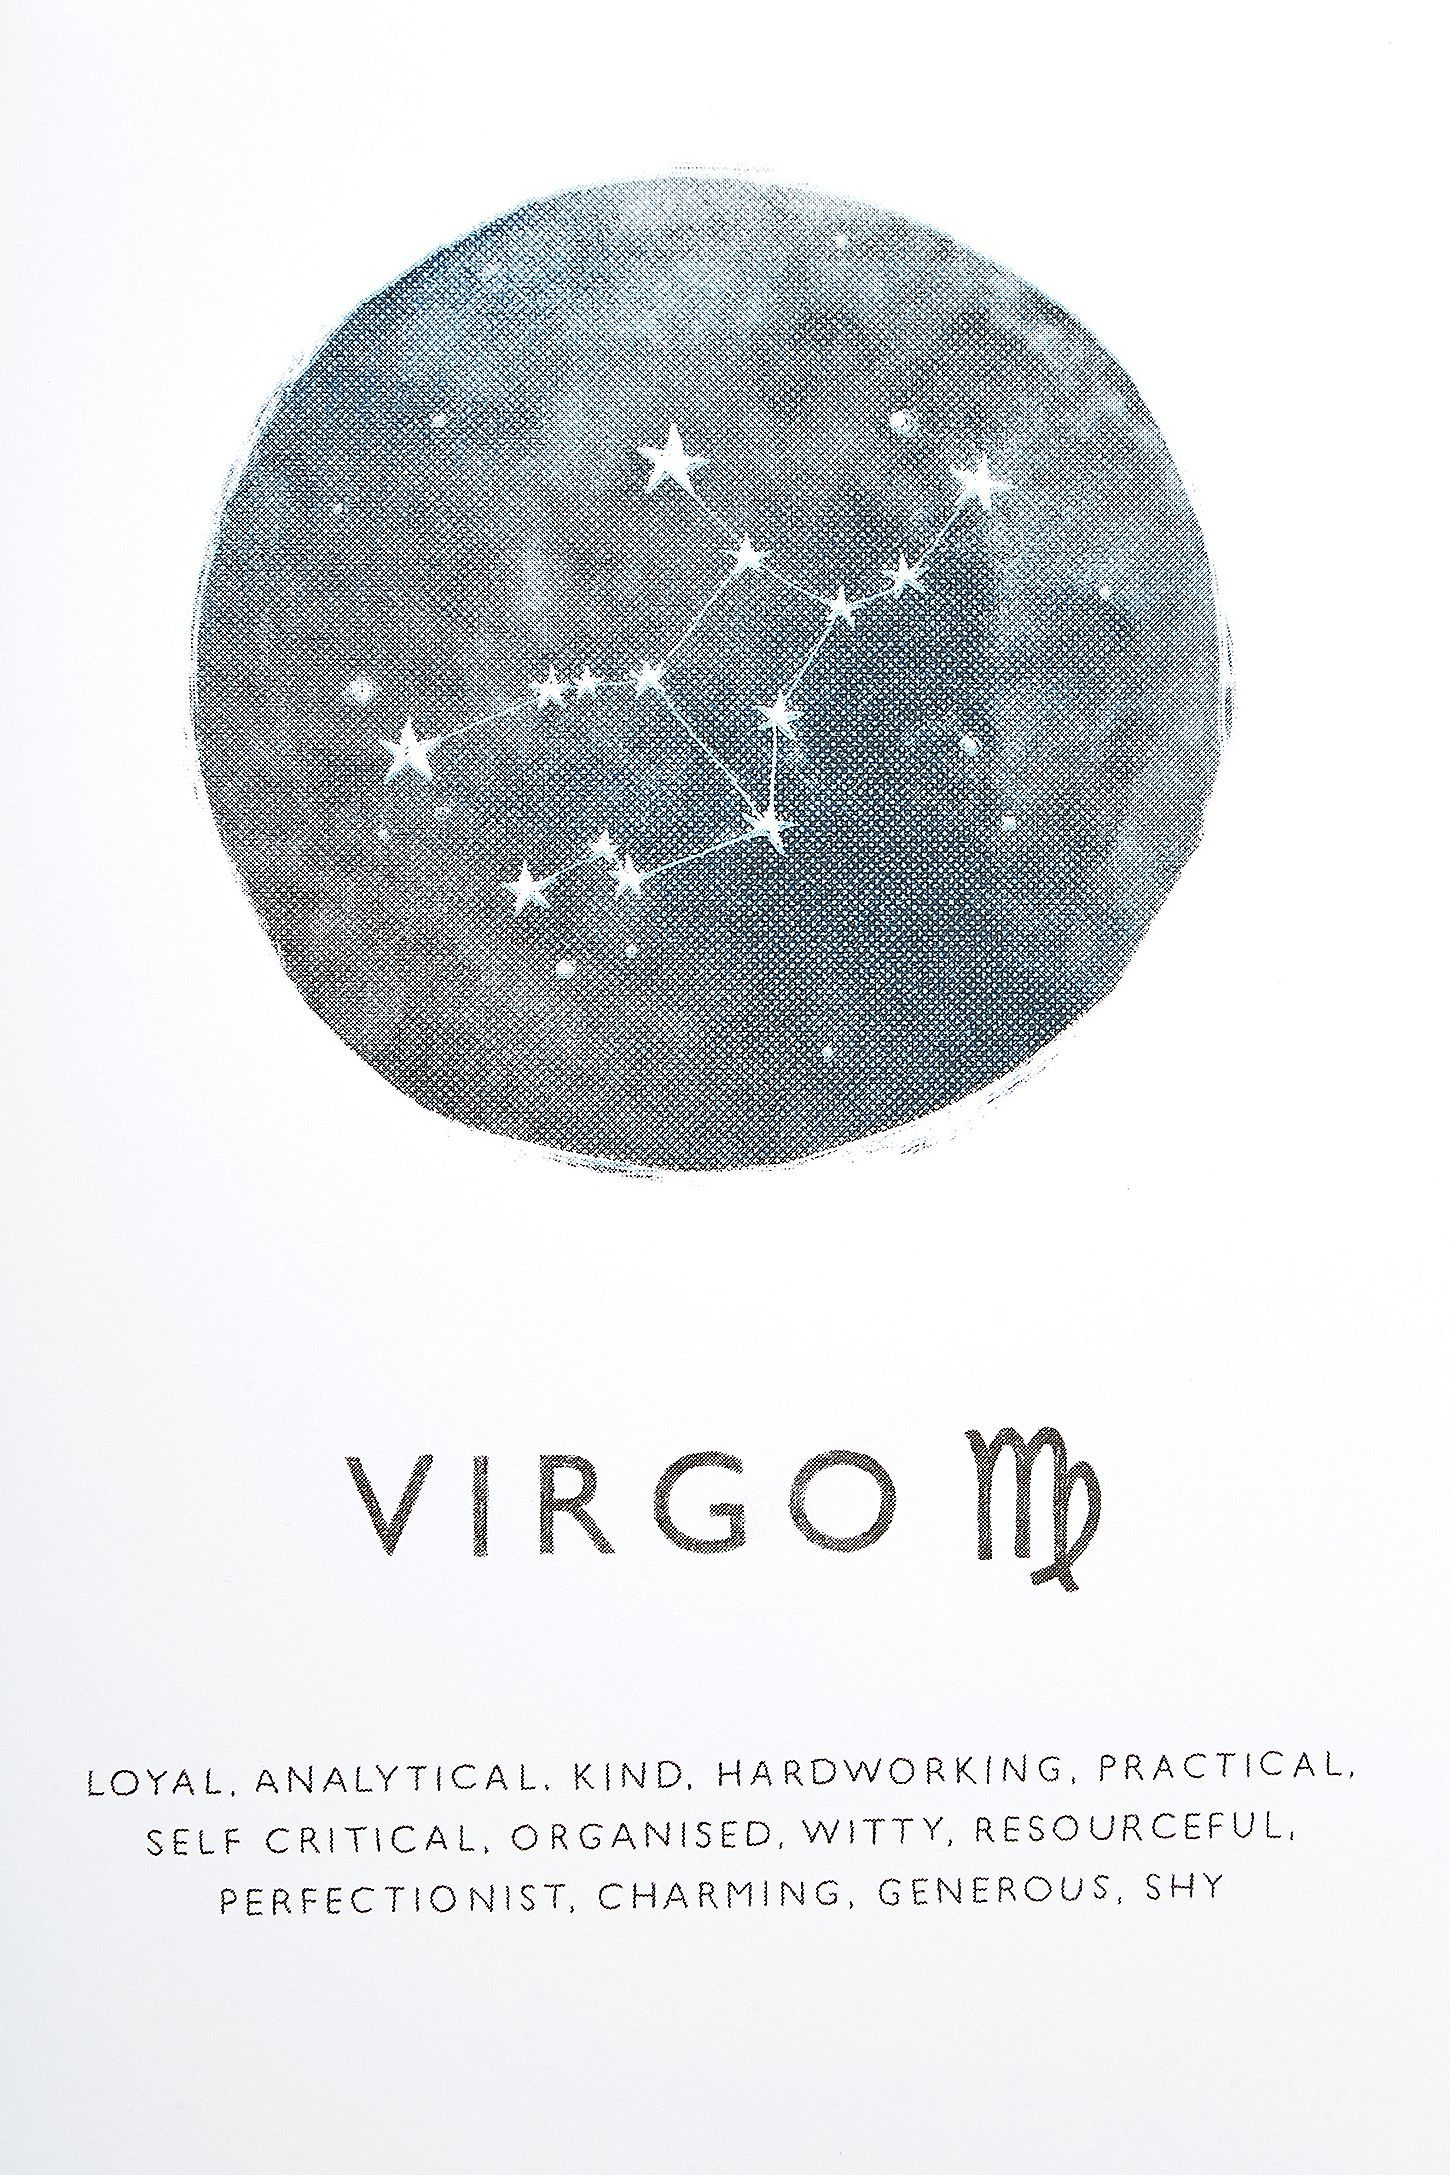 Photo of Ohh Deer Virgo Horoscope Wall Art Print